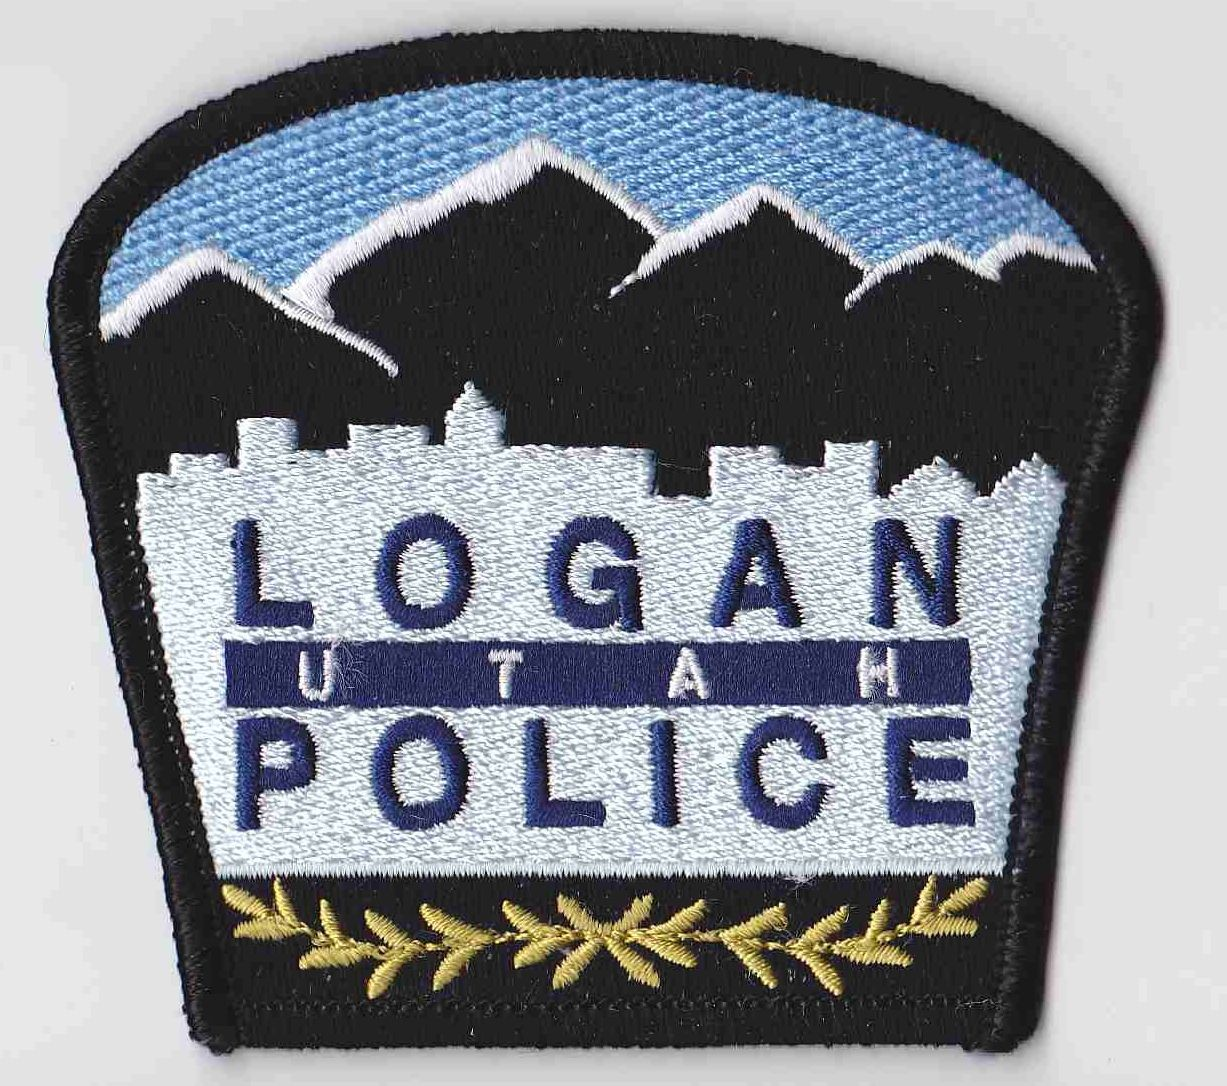 Logan Pd Ut Police Patches Police Emergency Service